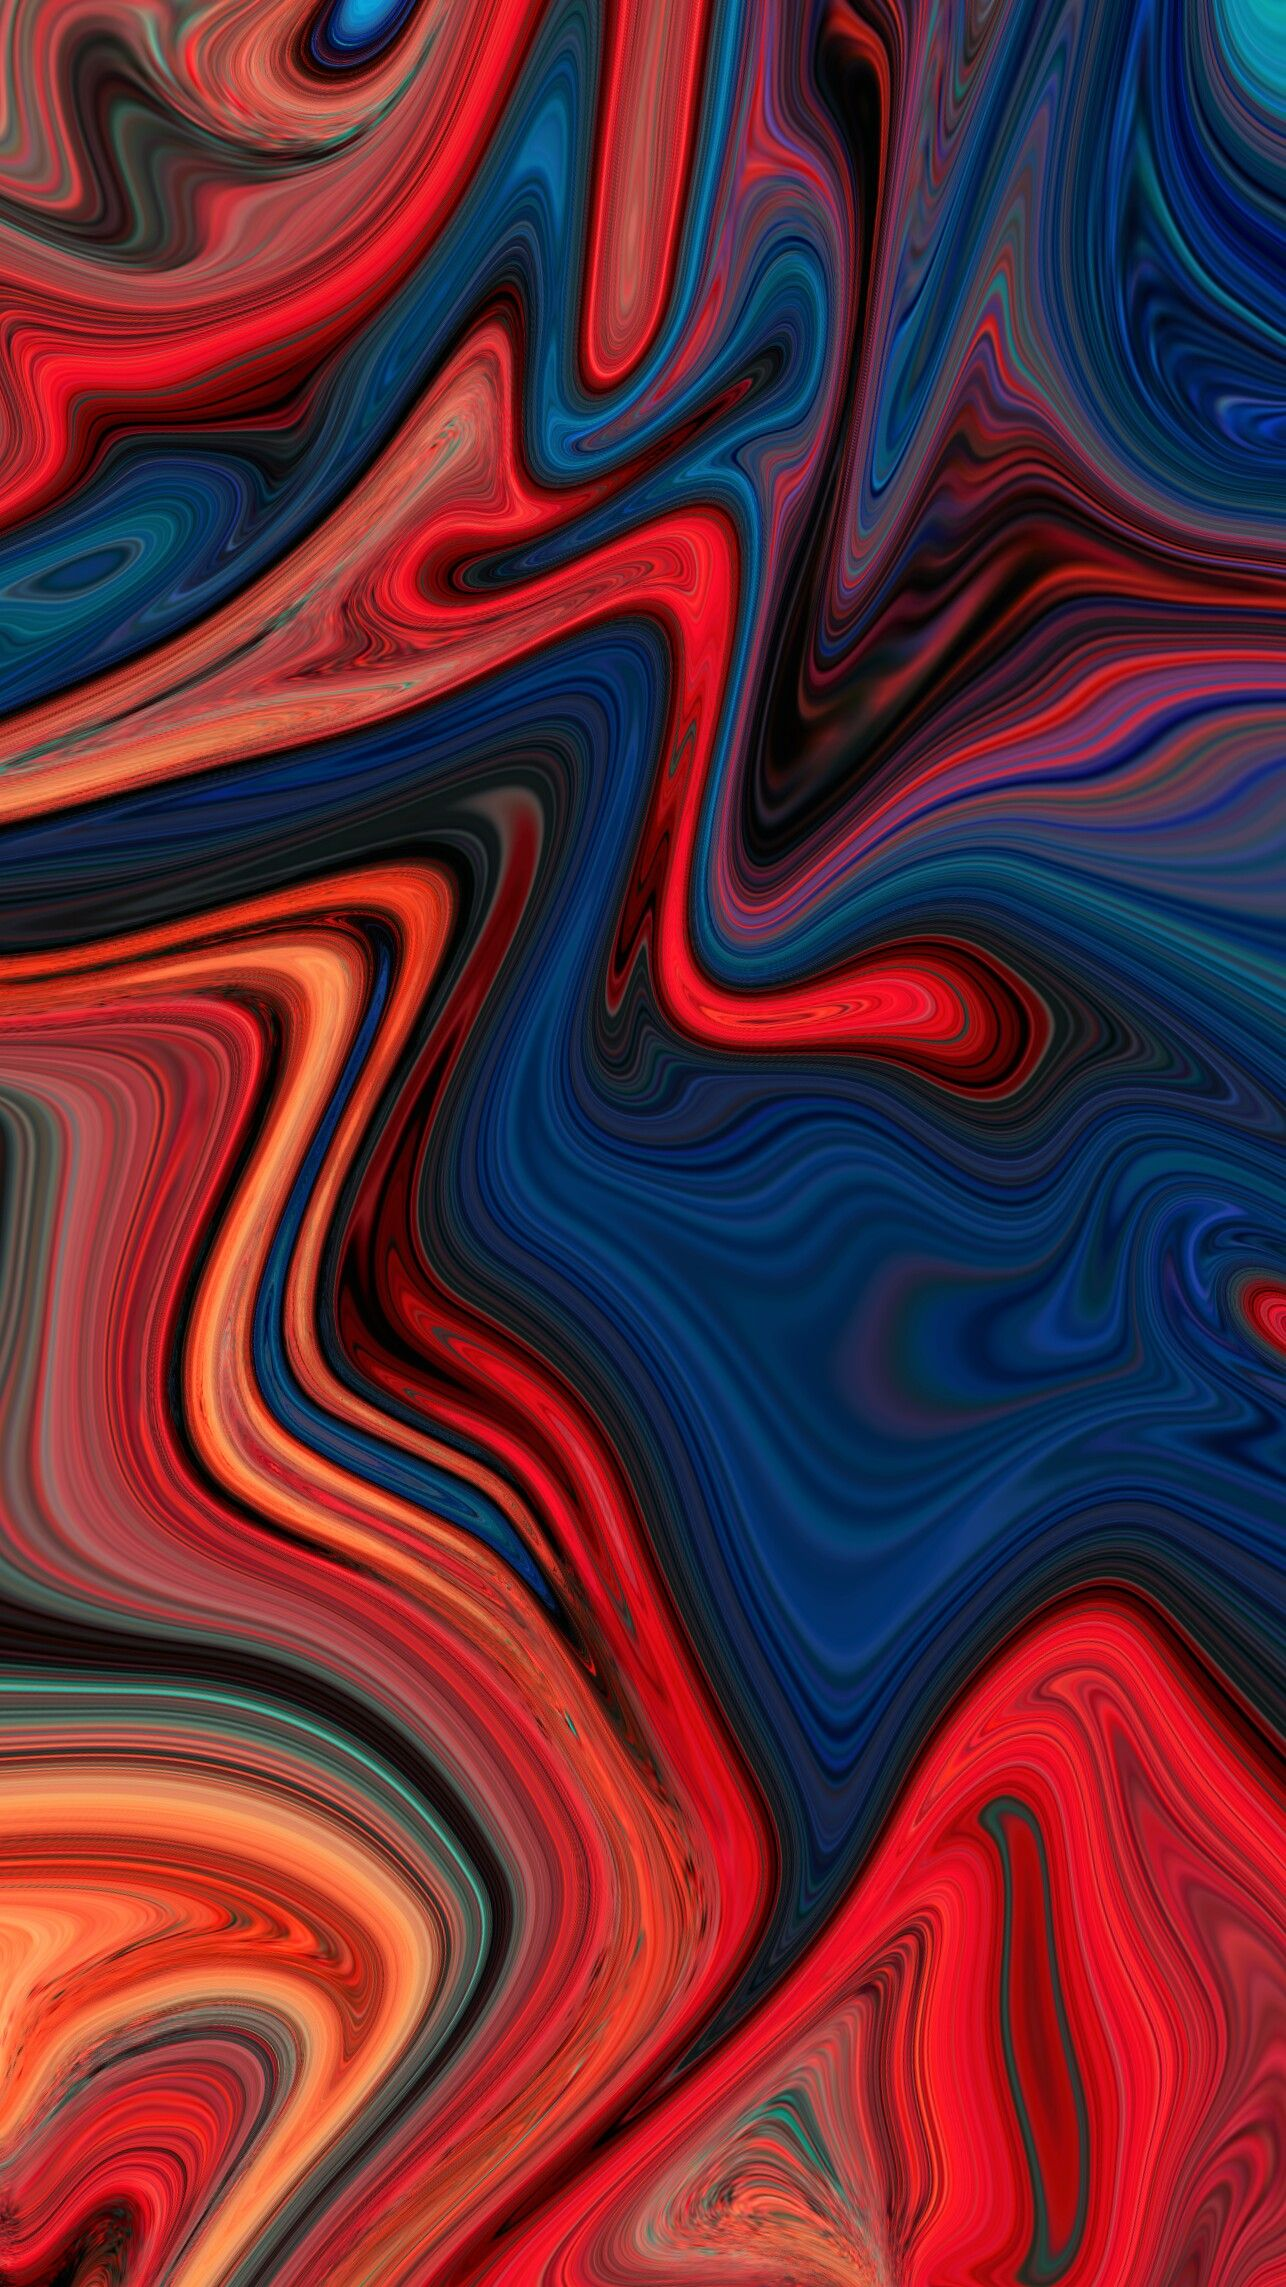 Pin by Atish Waghwase on Wallpapers Abstract iphone